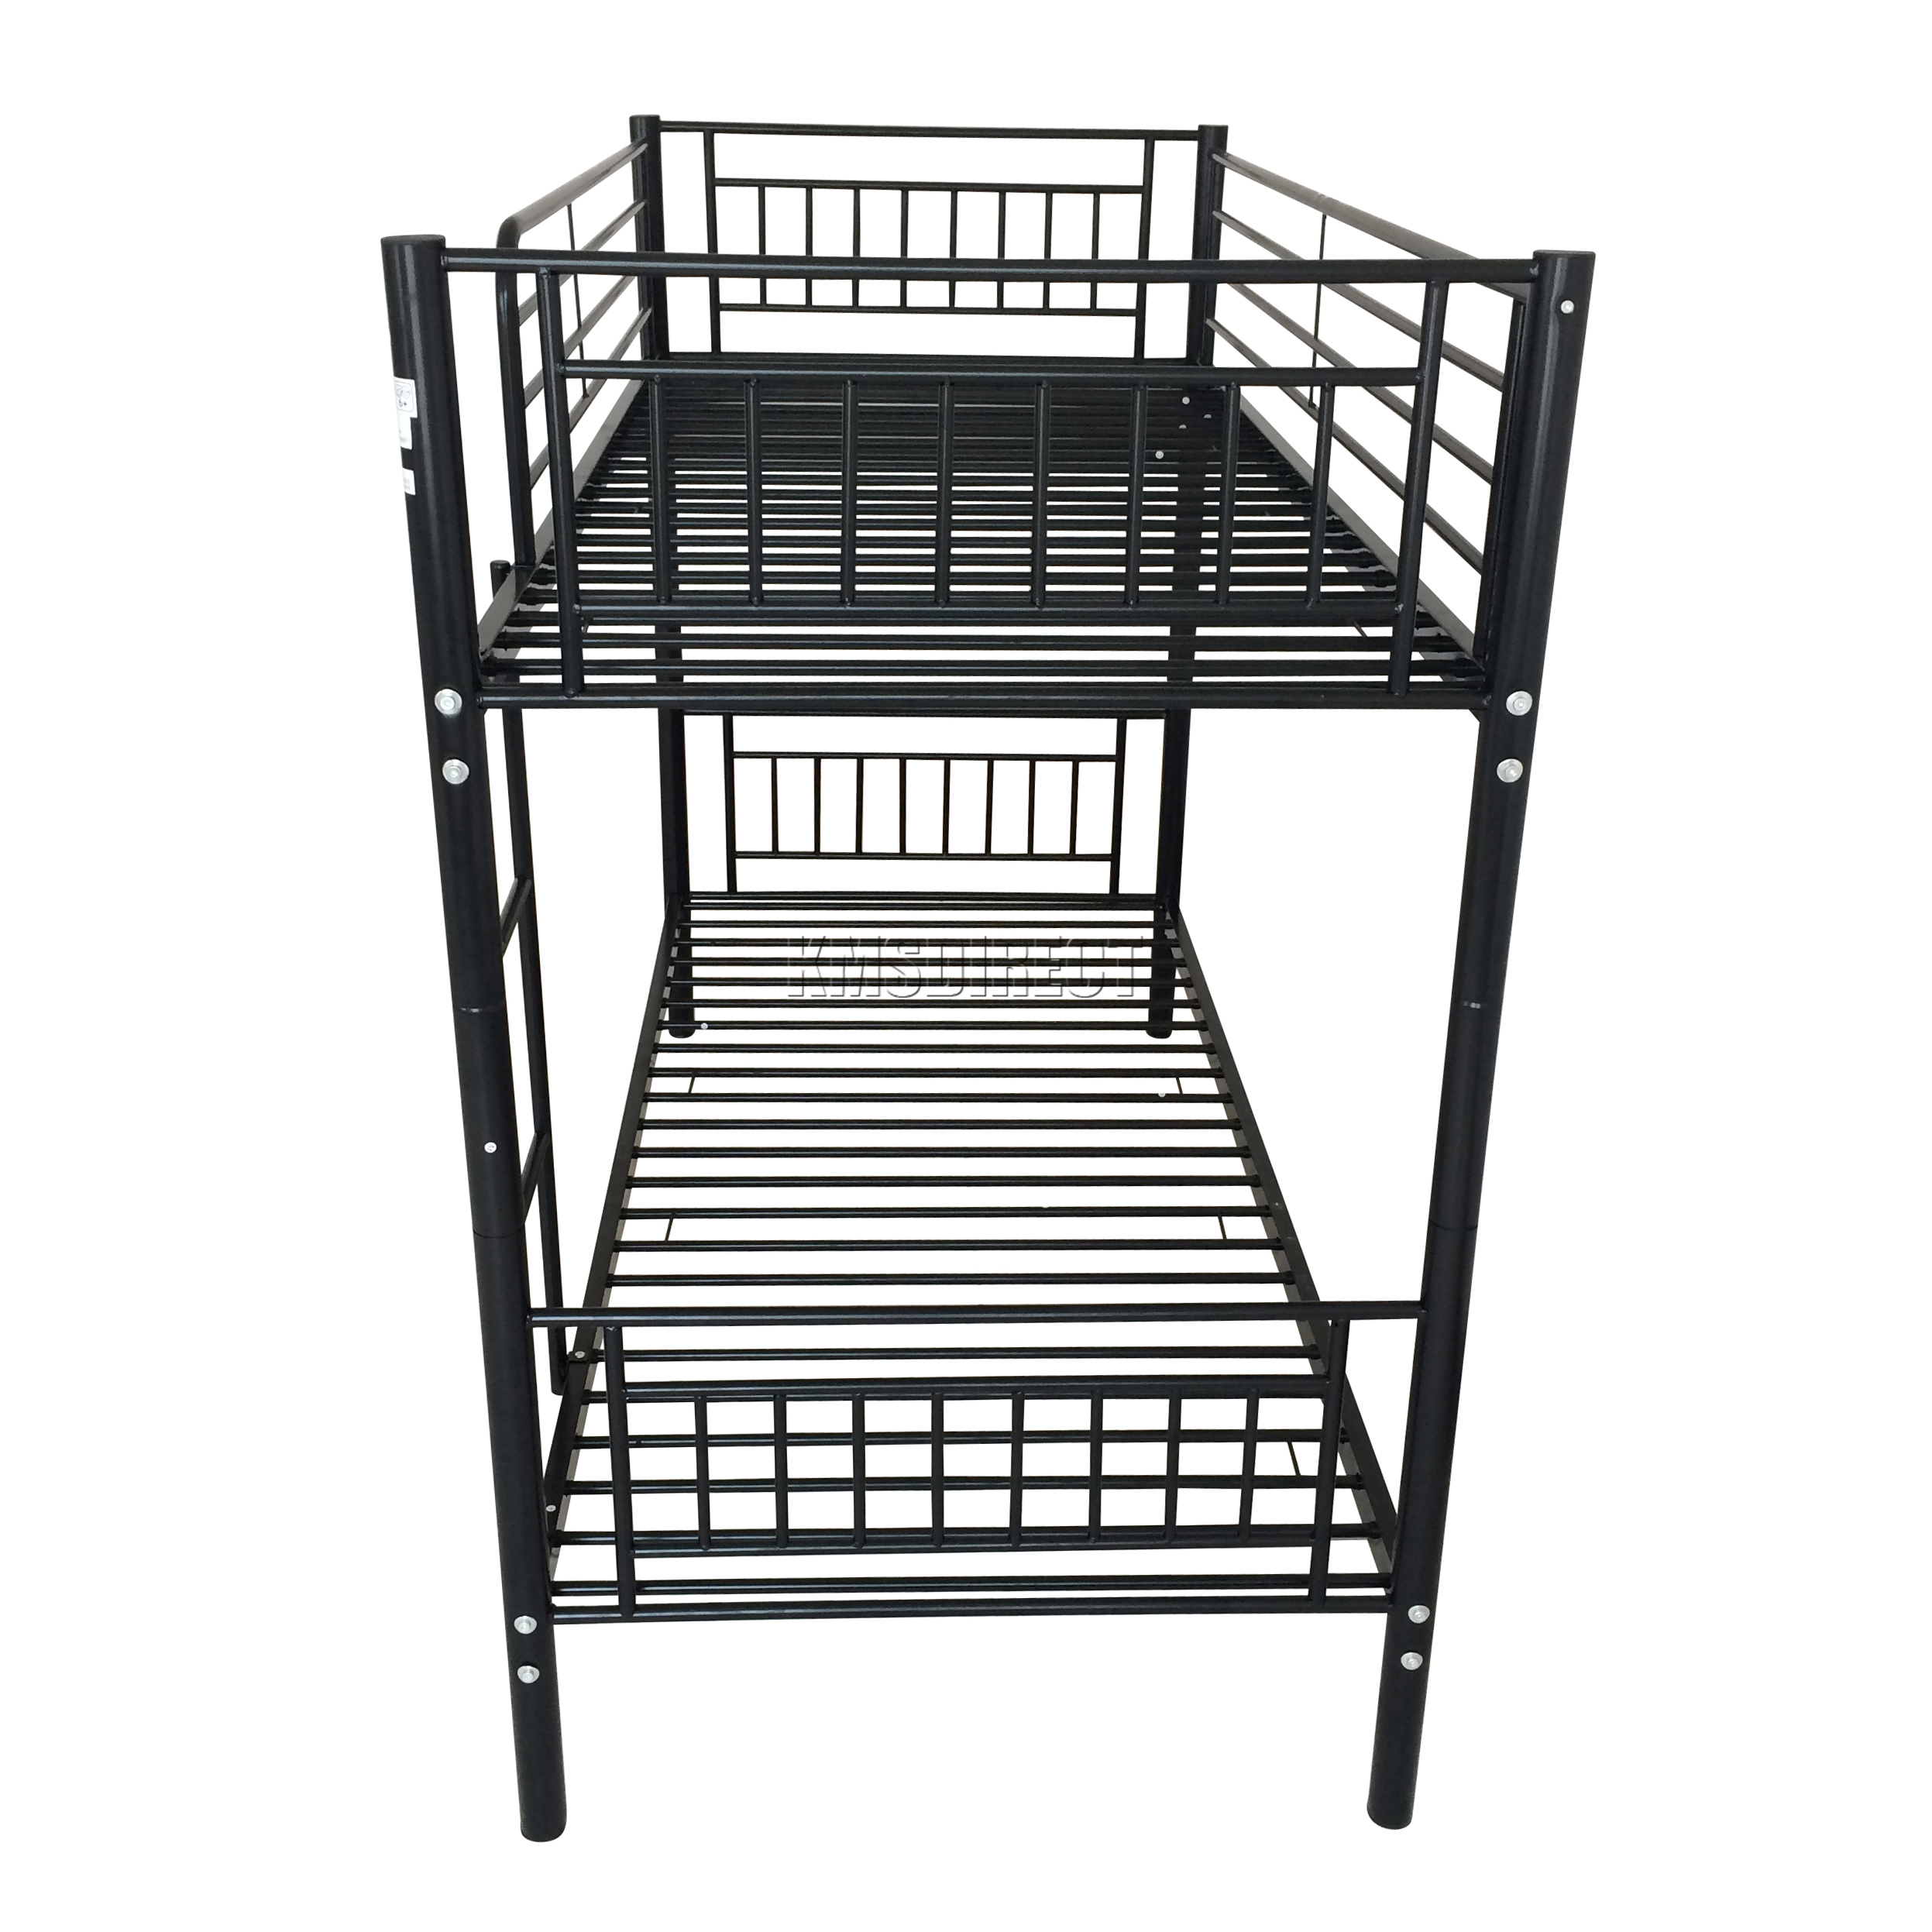 foxhunter 3ft single metal frame bunk bed children kids twin sleeper black mbb03 ebay. Black Bedroom Furniture Sets. Home Design Ideas